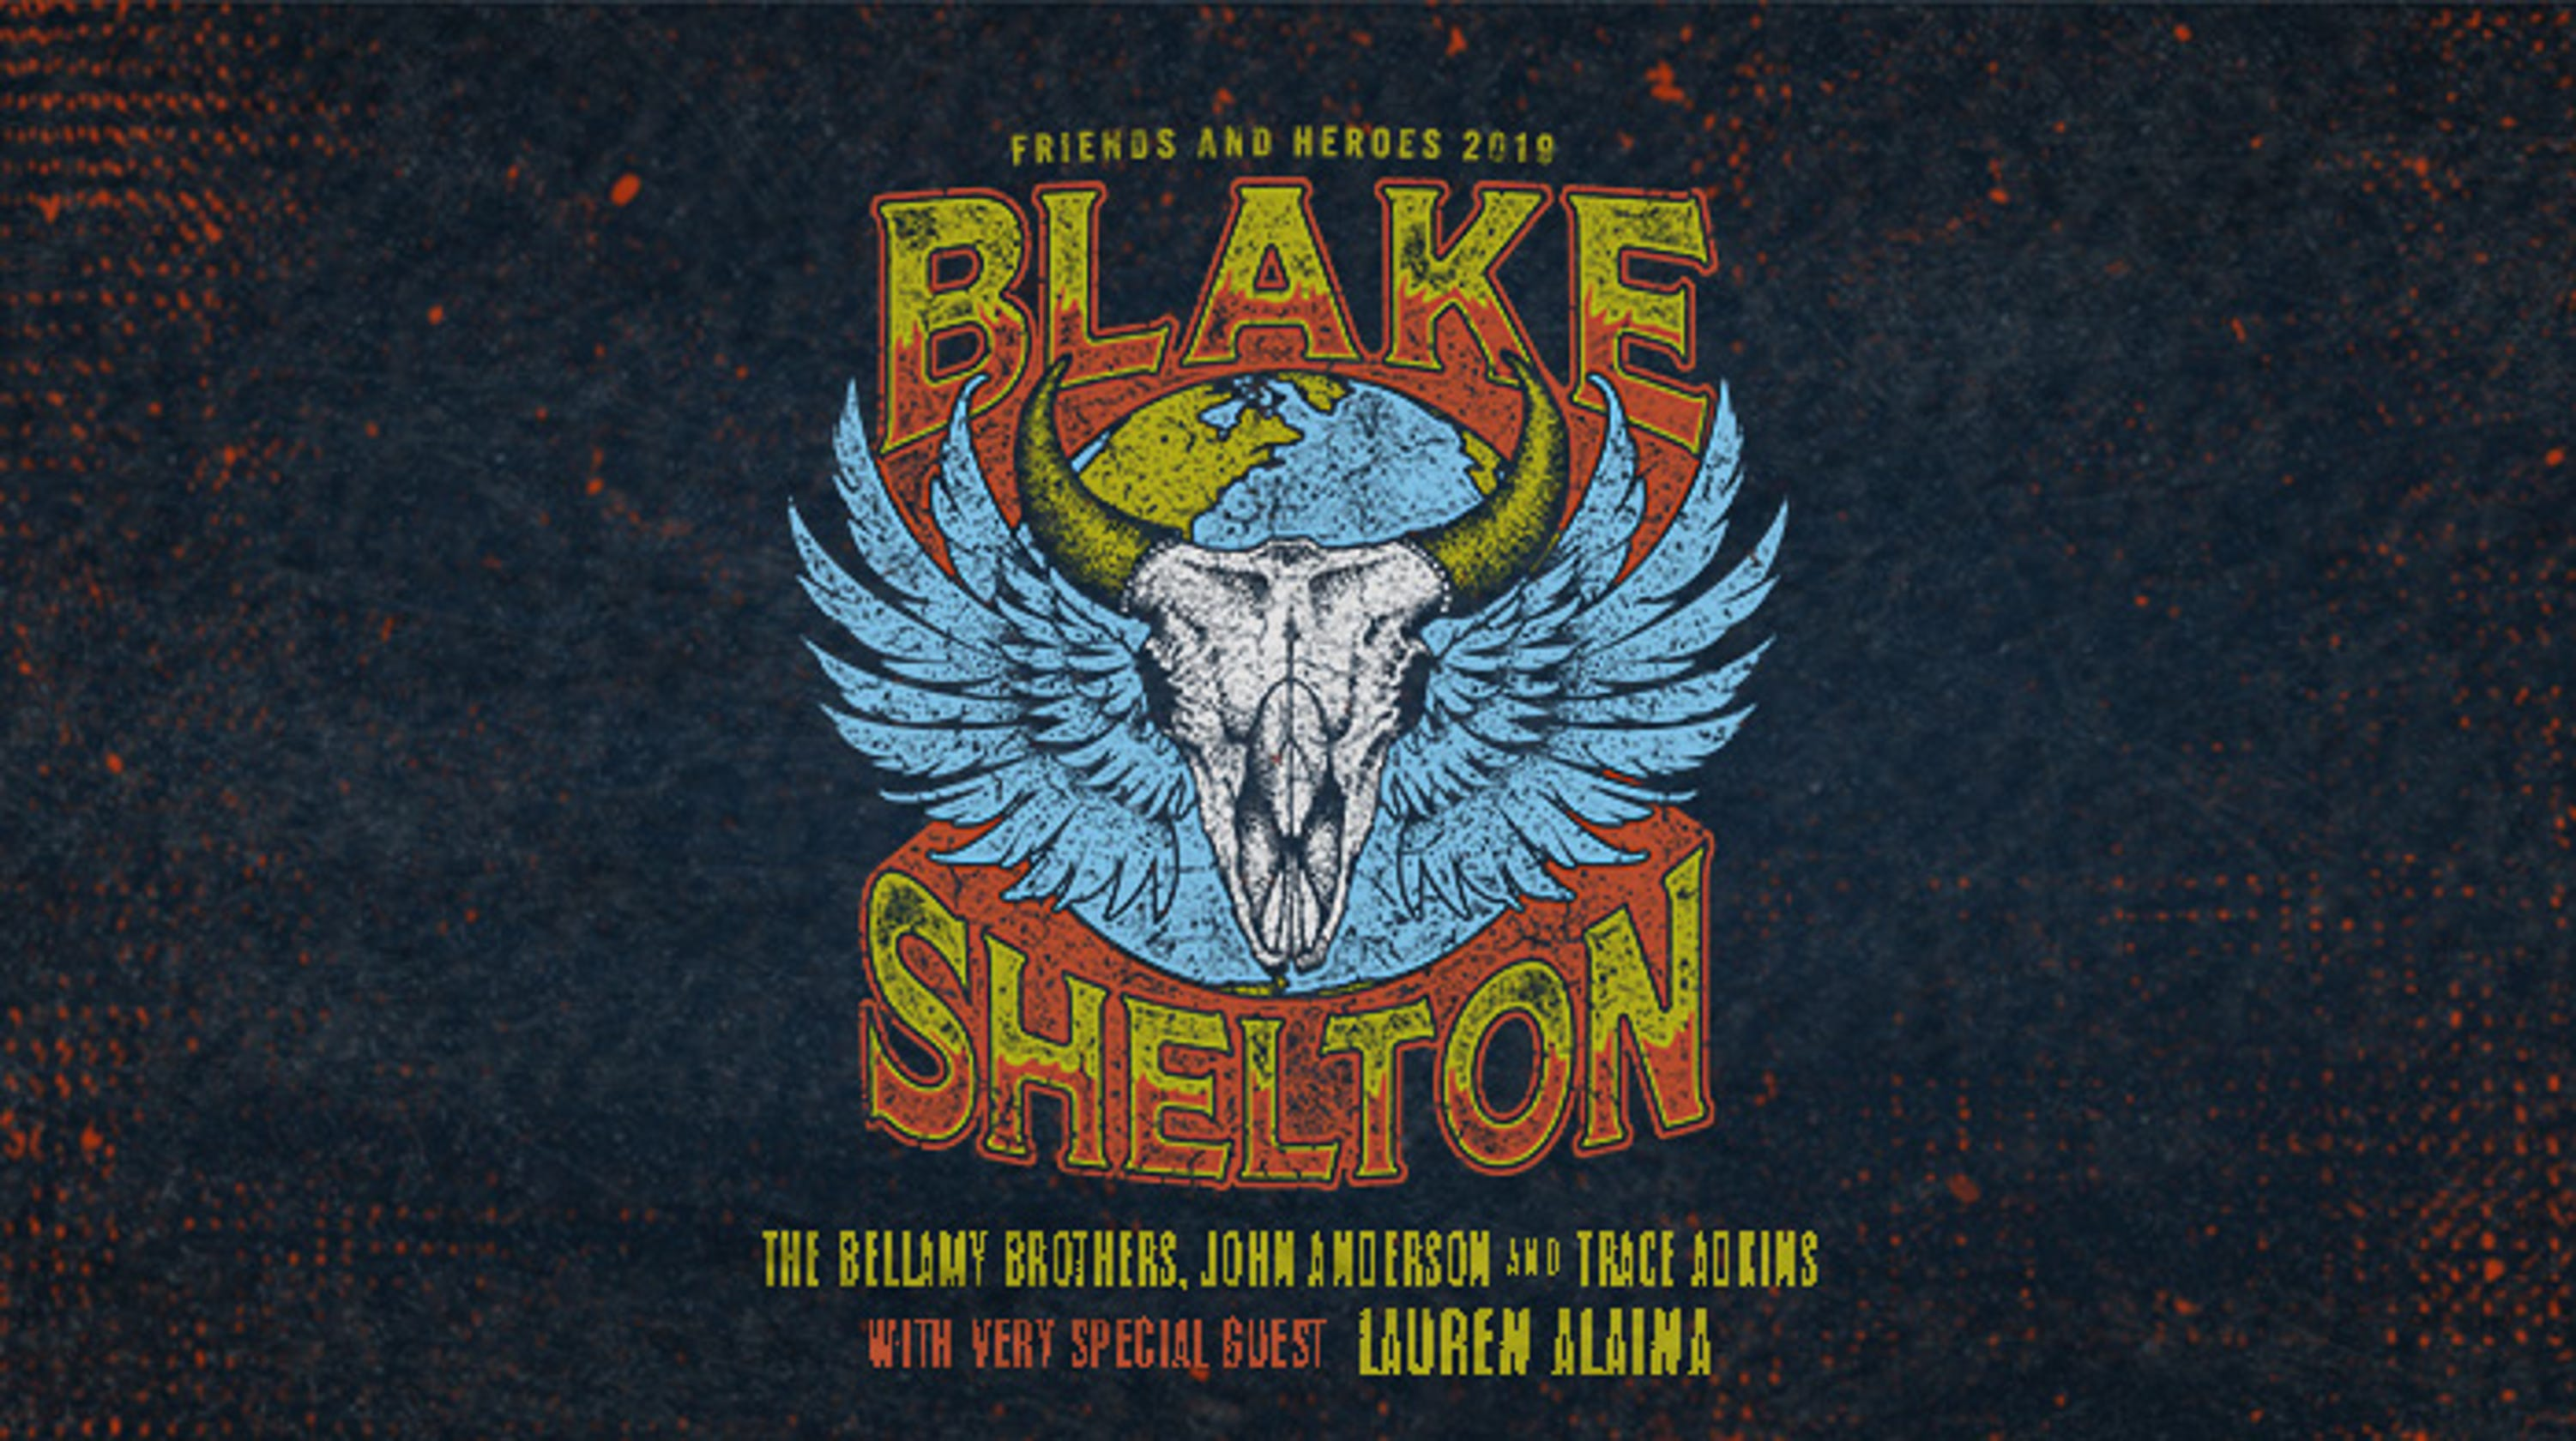 Who Is Touring With Blake Shelton